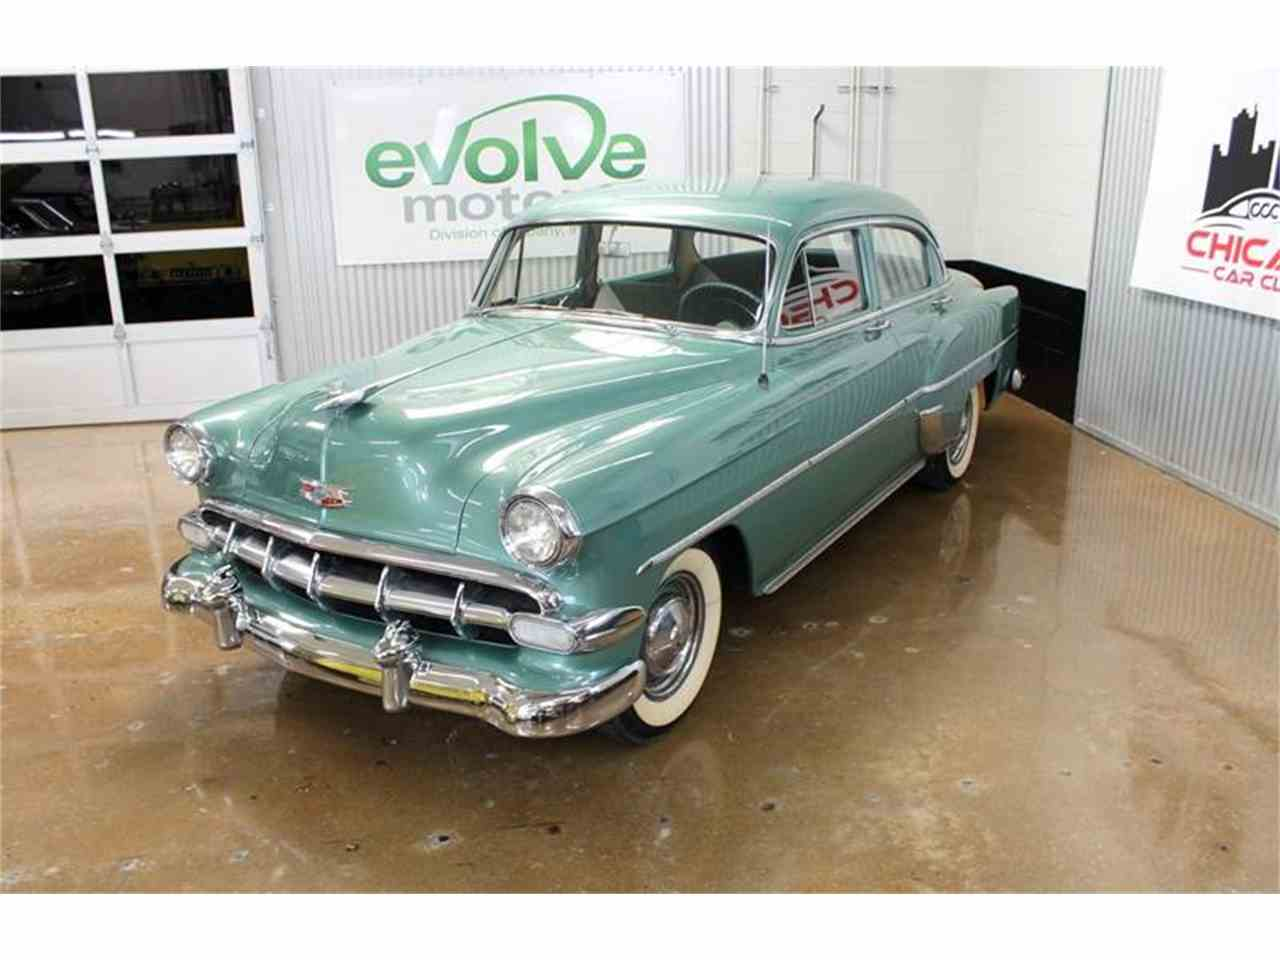 All Chevy 1954 chevy : 1954 Chevrolet 210 for Sale on ClassicCars.com